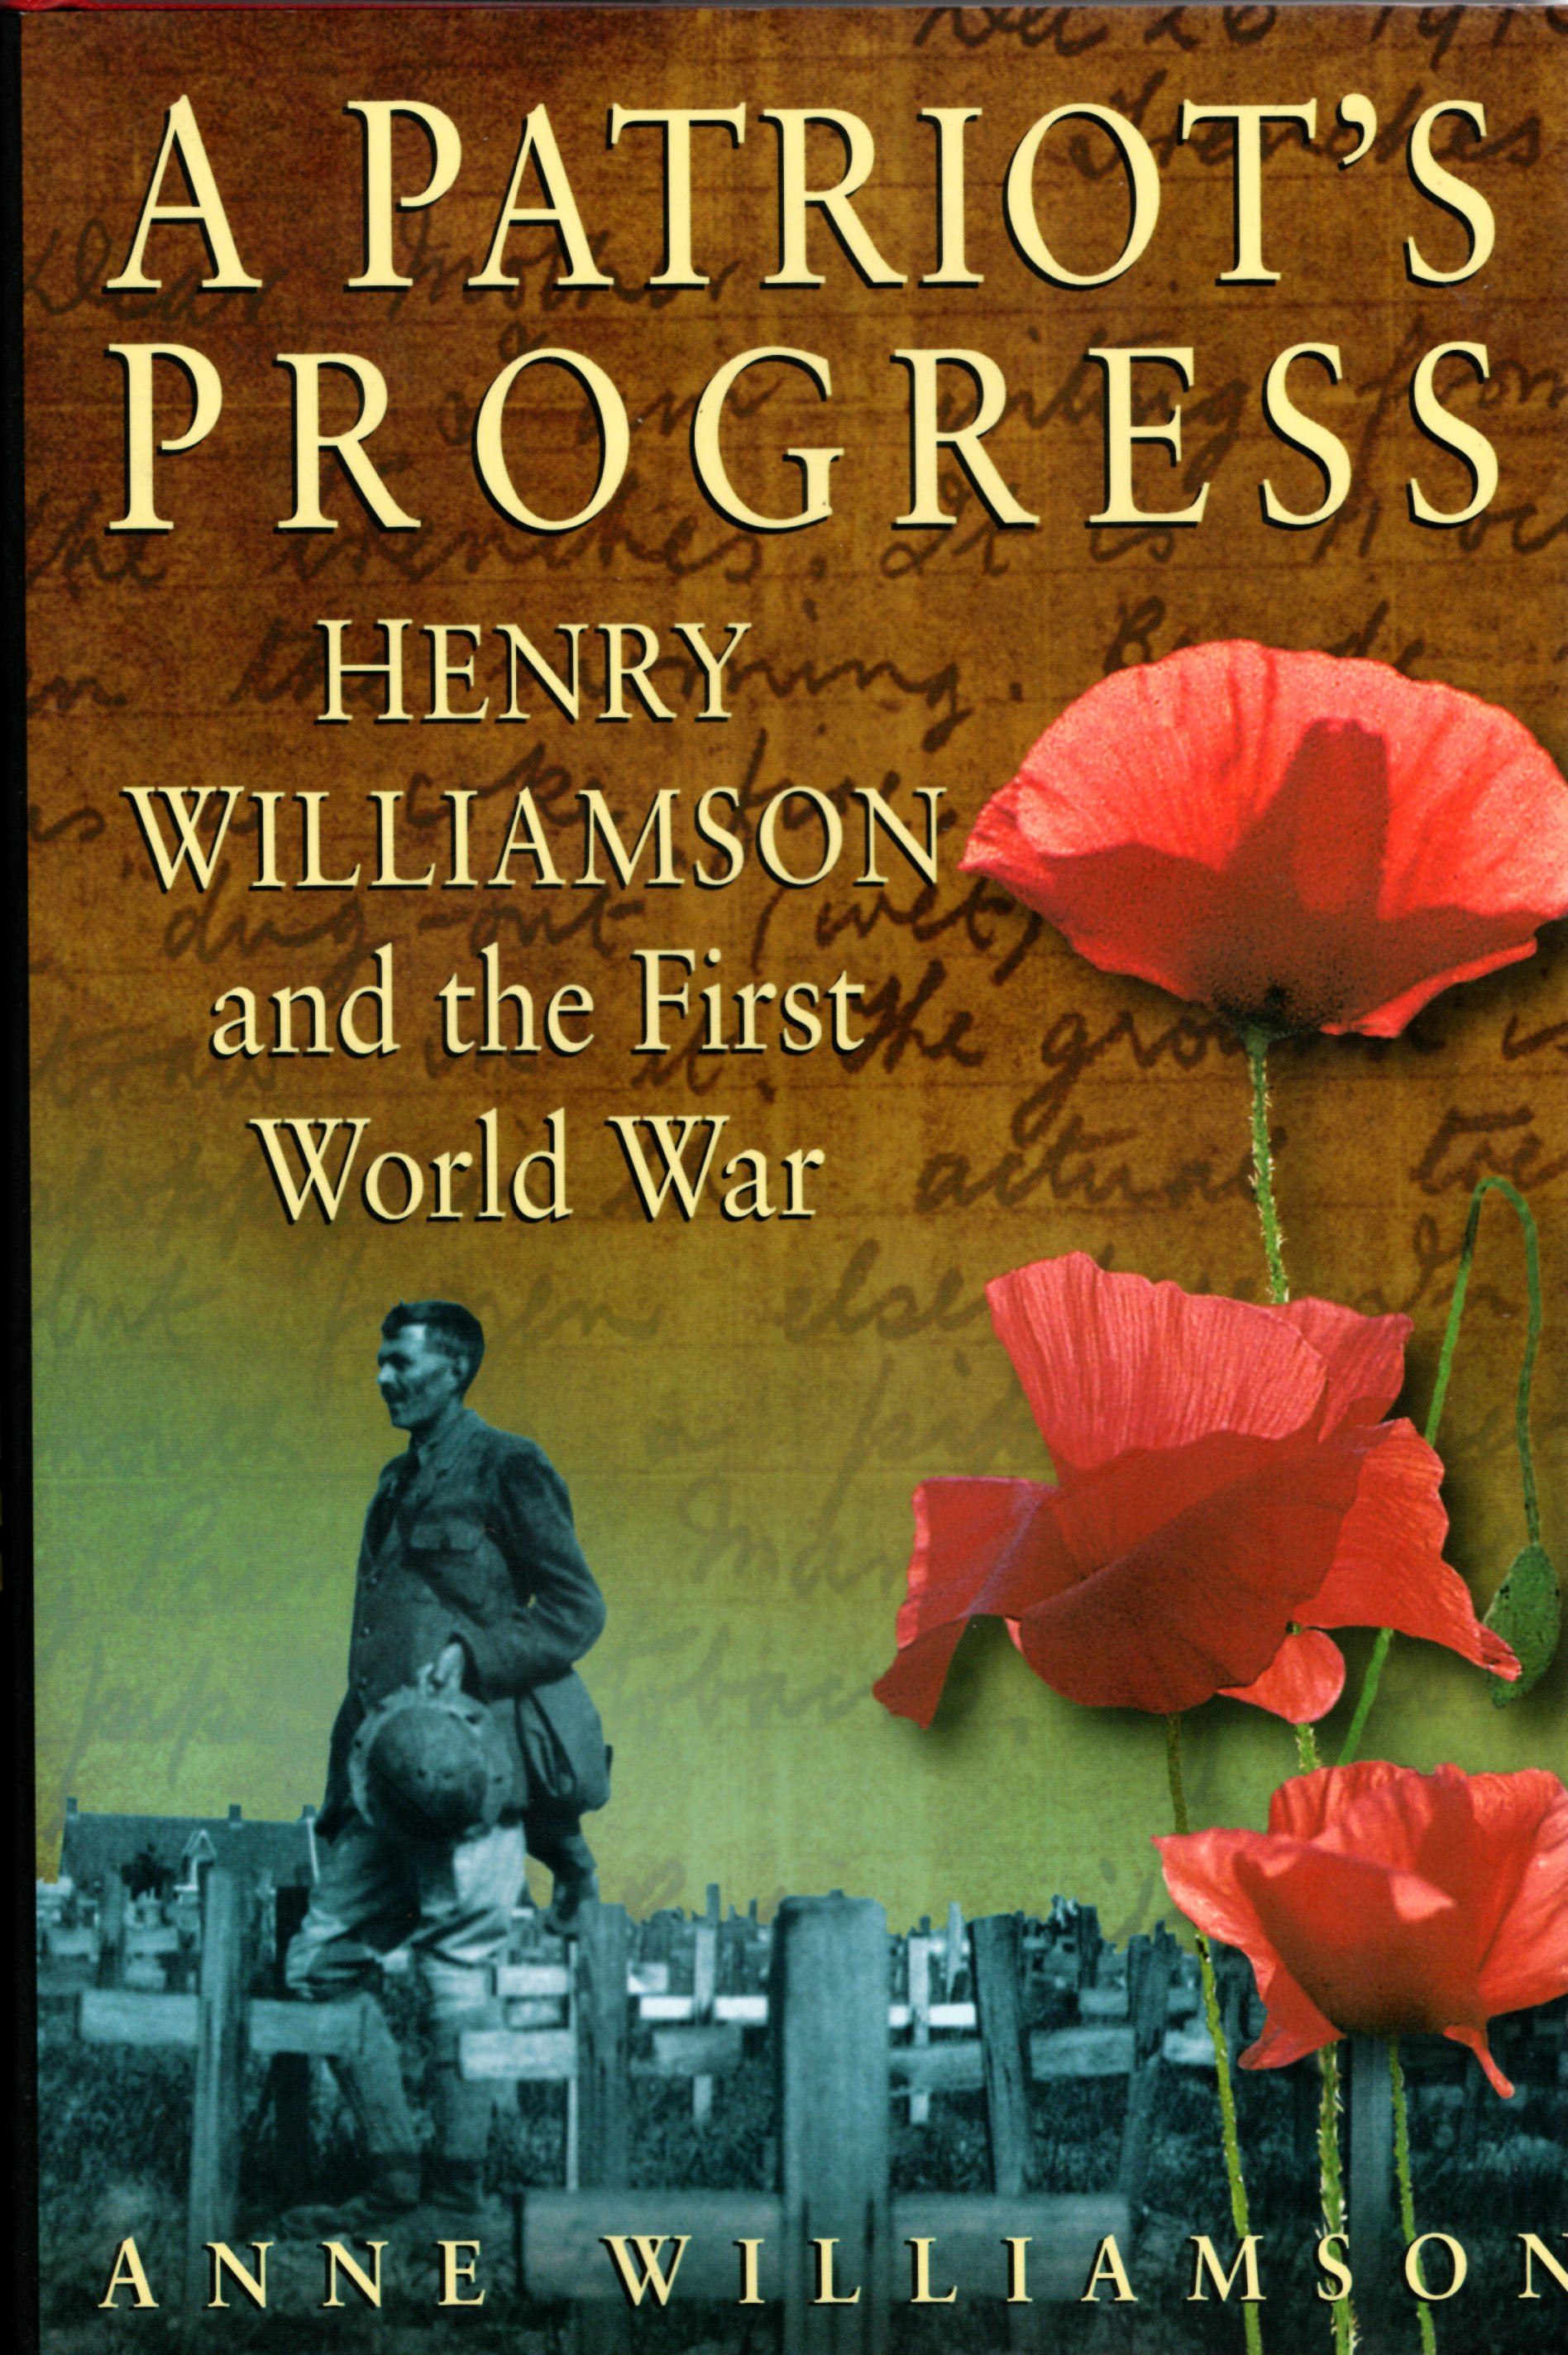 Image for A Patriot's Progress: Henry Williamson and the First World War